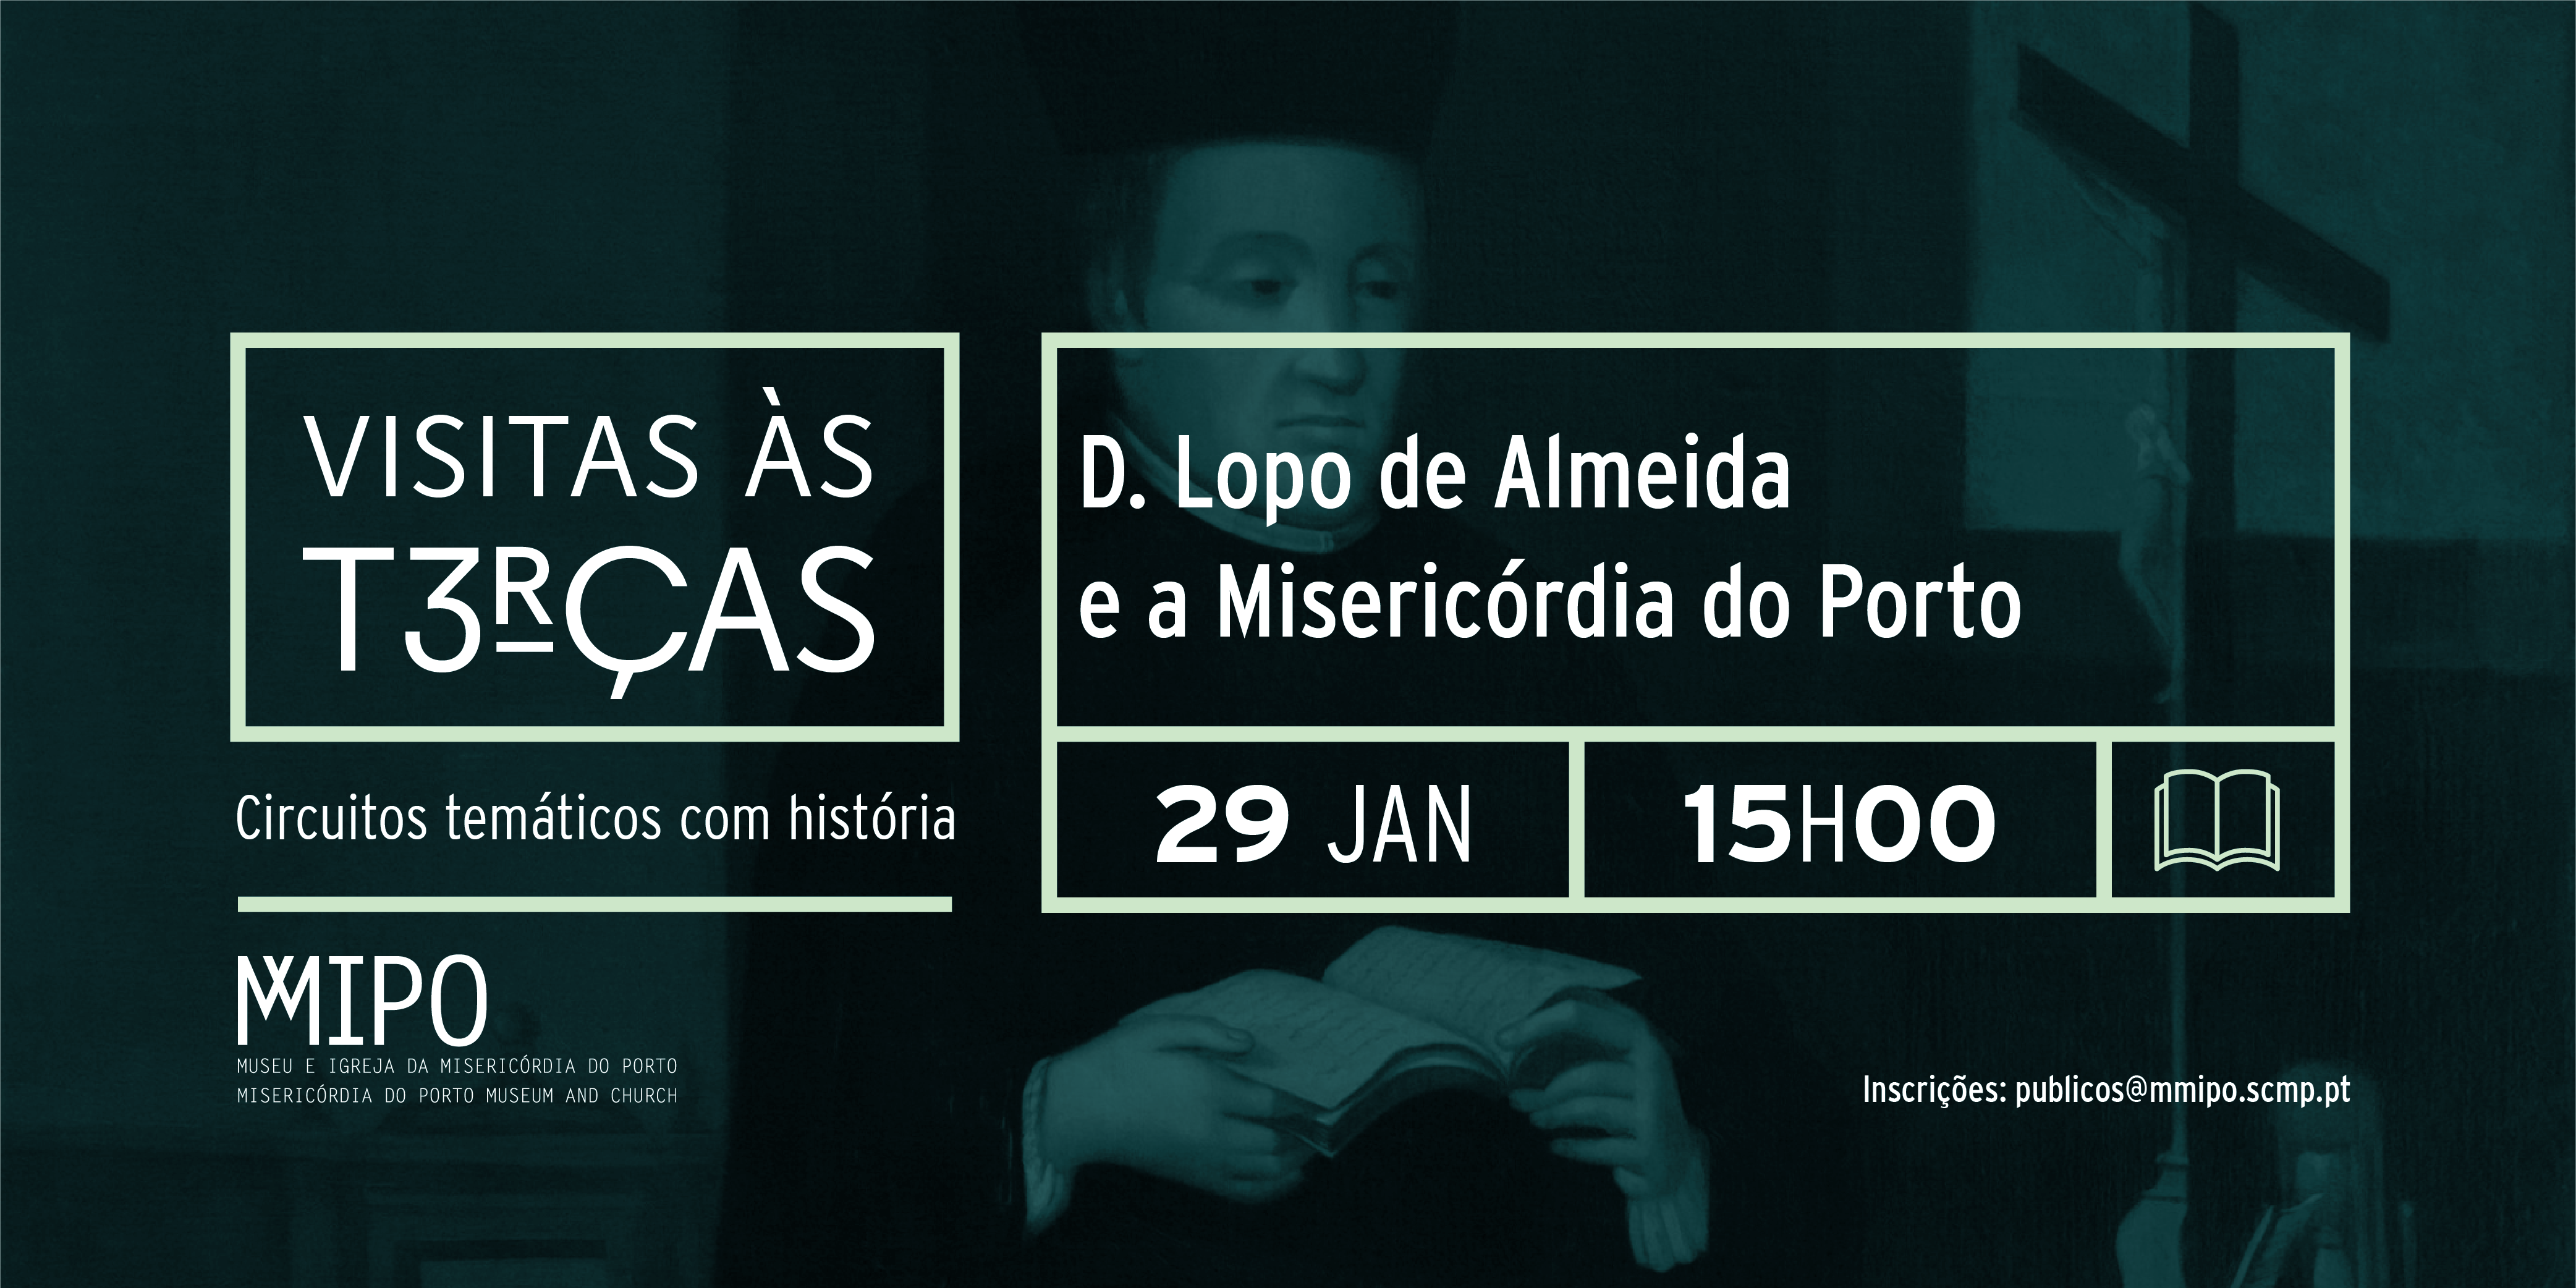 https://www.scmp.pt/assets/misc/img/noticias/2019/2019%2001%2029%20VisitaTer%C3%A7as/MMIPO%20visitasastercas%20JAN_banner%20site.png